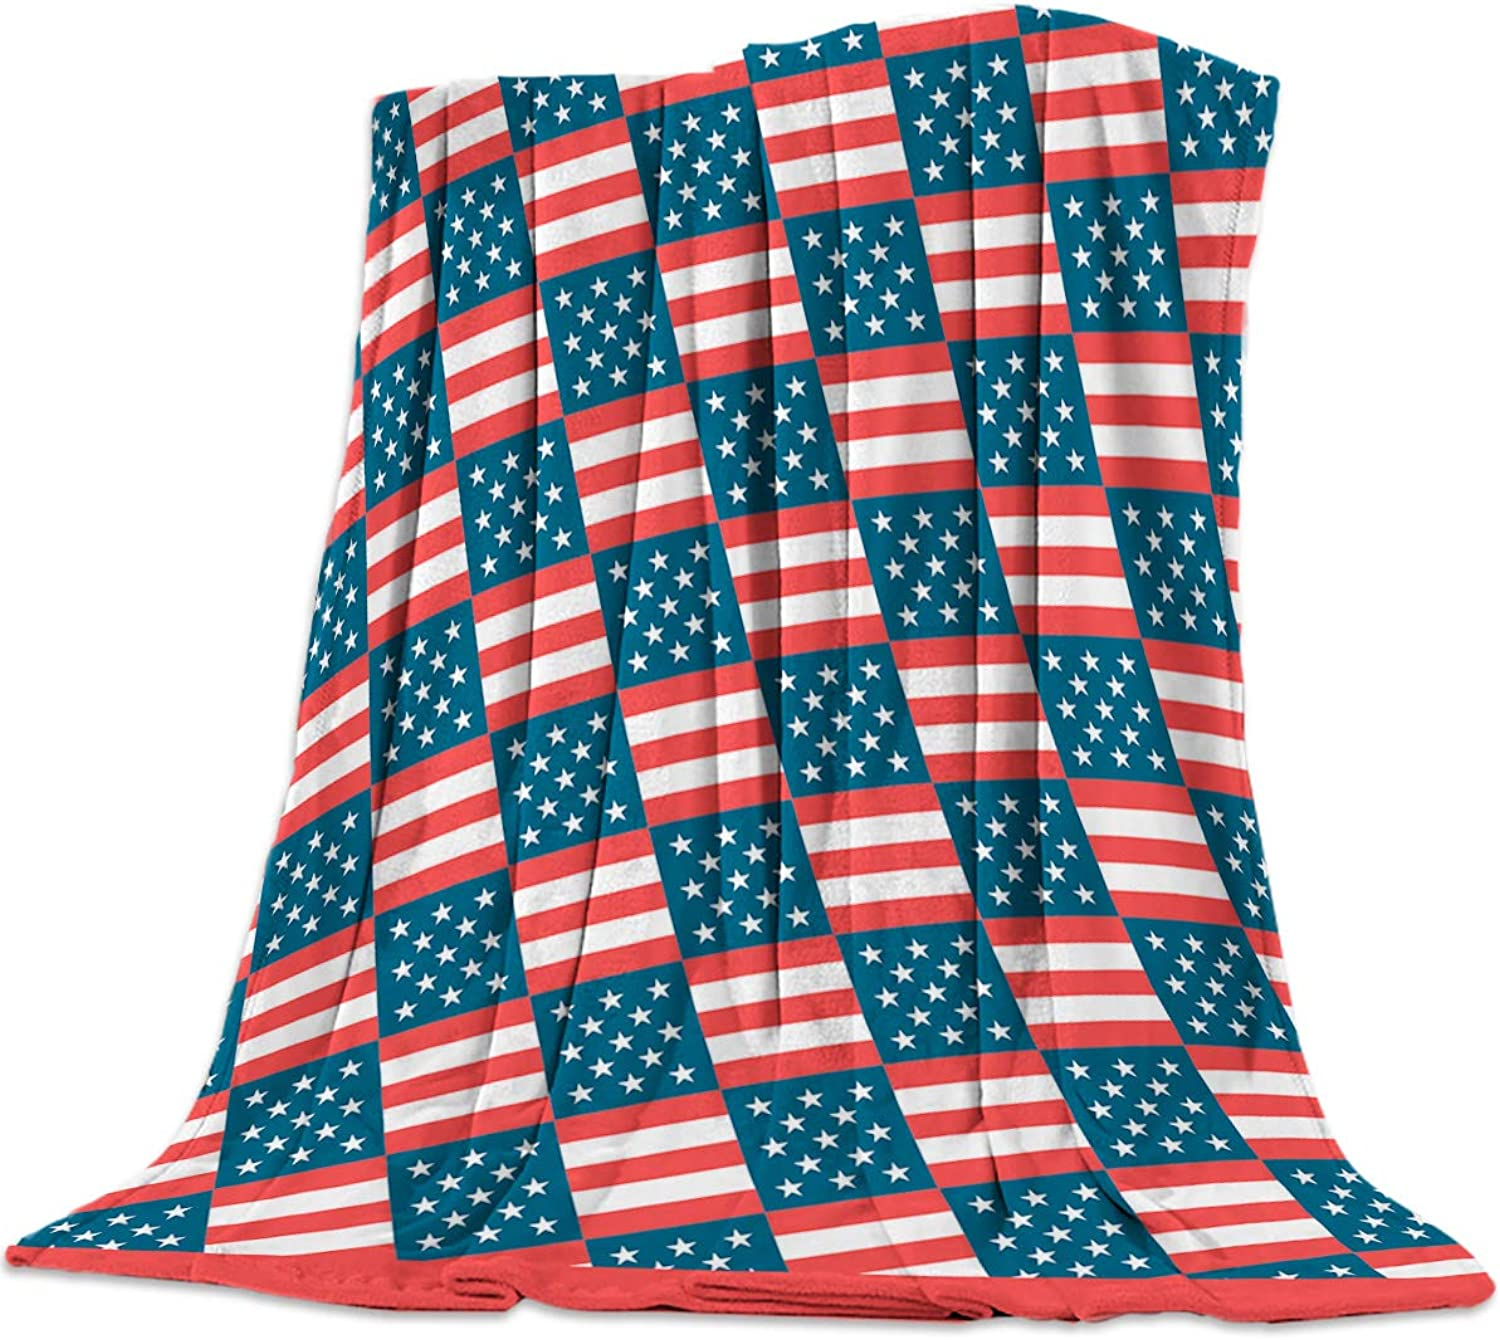 YEHO Art Gallery 49x59 Inch Flannel Fleece Bed Blanket Soft ThrowBlankets for Girls Boys,The USA Flag Star Stripe Pattern,Cozy Lightweight Blankets for Bedroom Living Room Sofa Couch